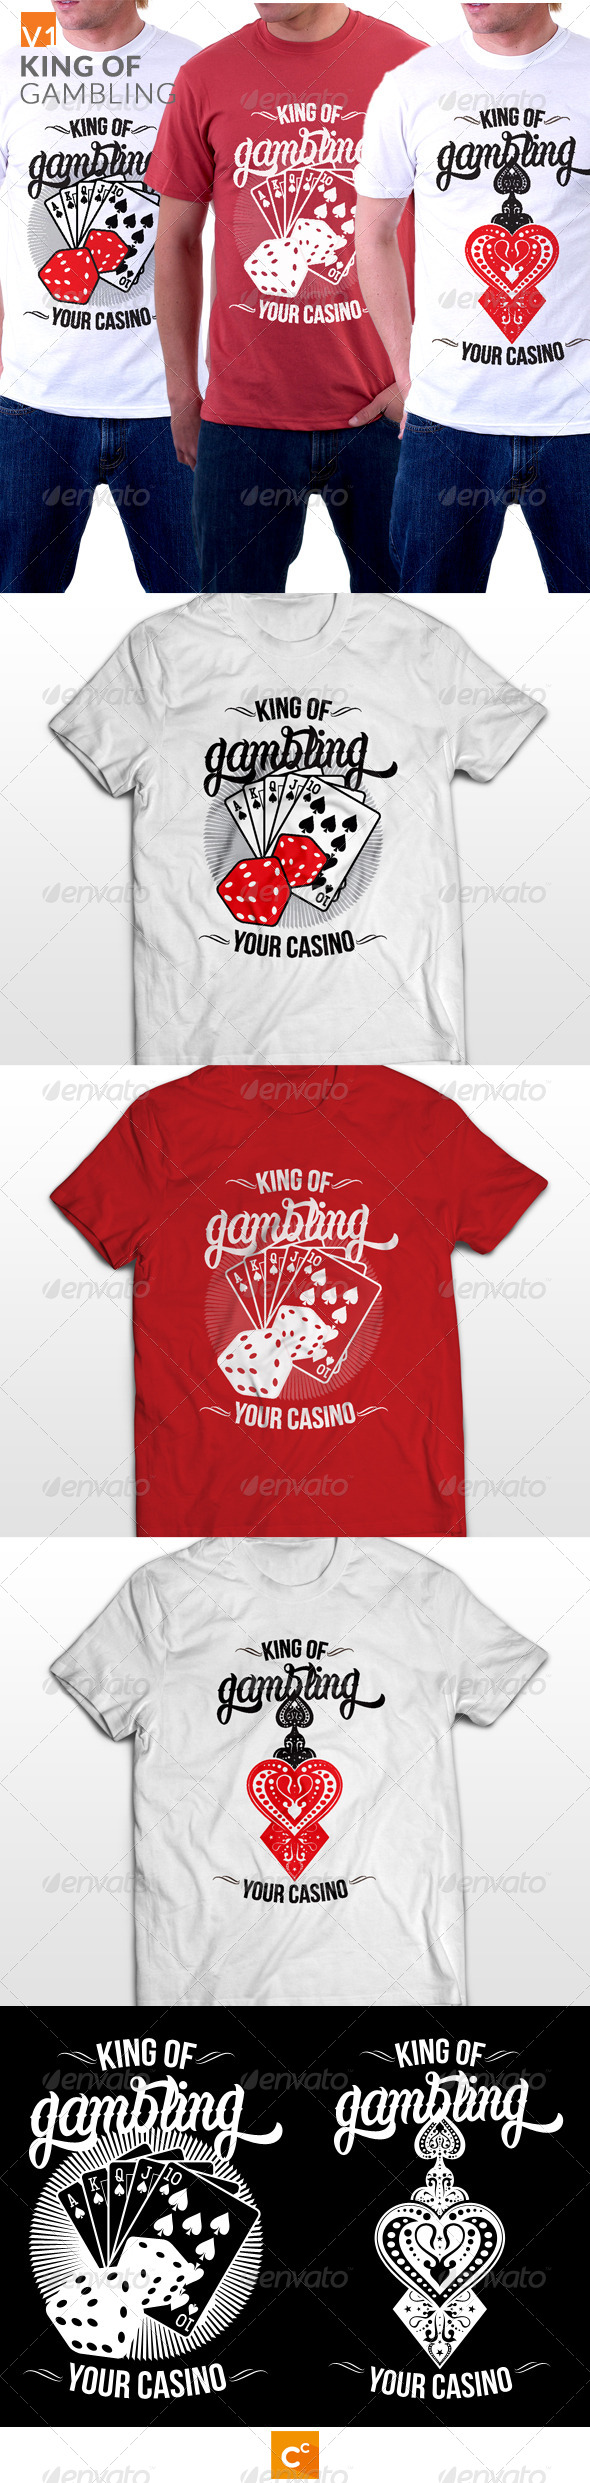 GraphicRiver King of Gambling T-shirt 8156837